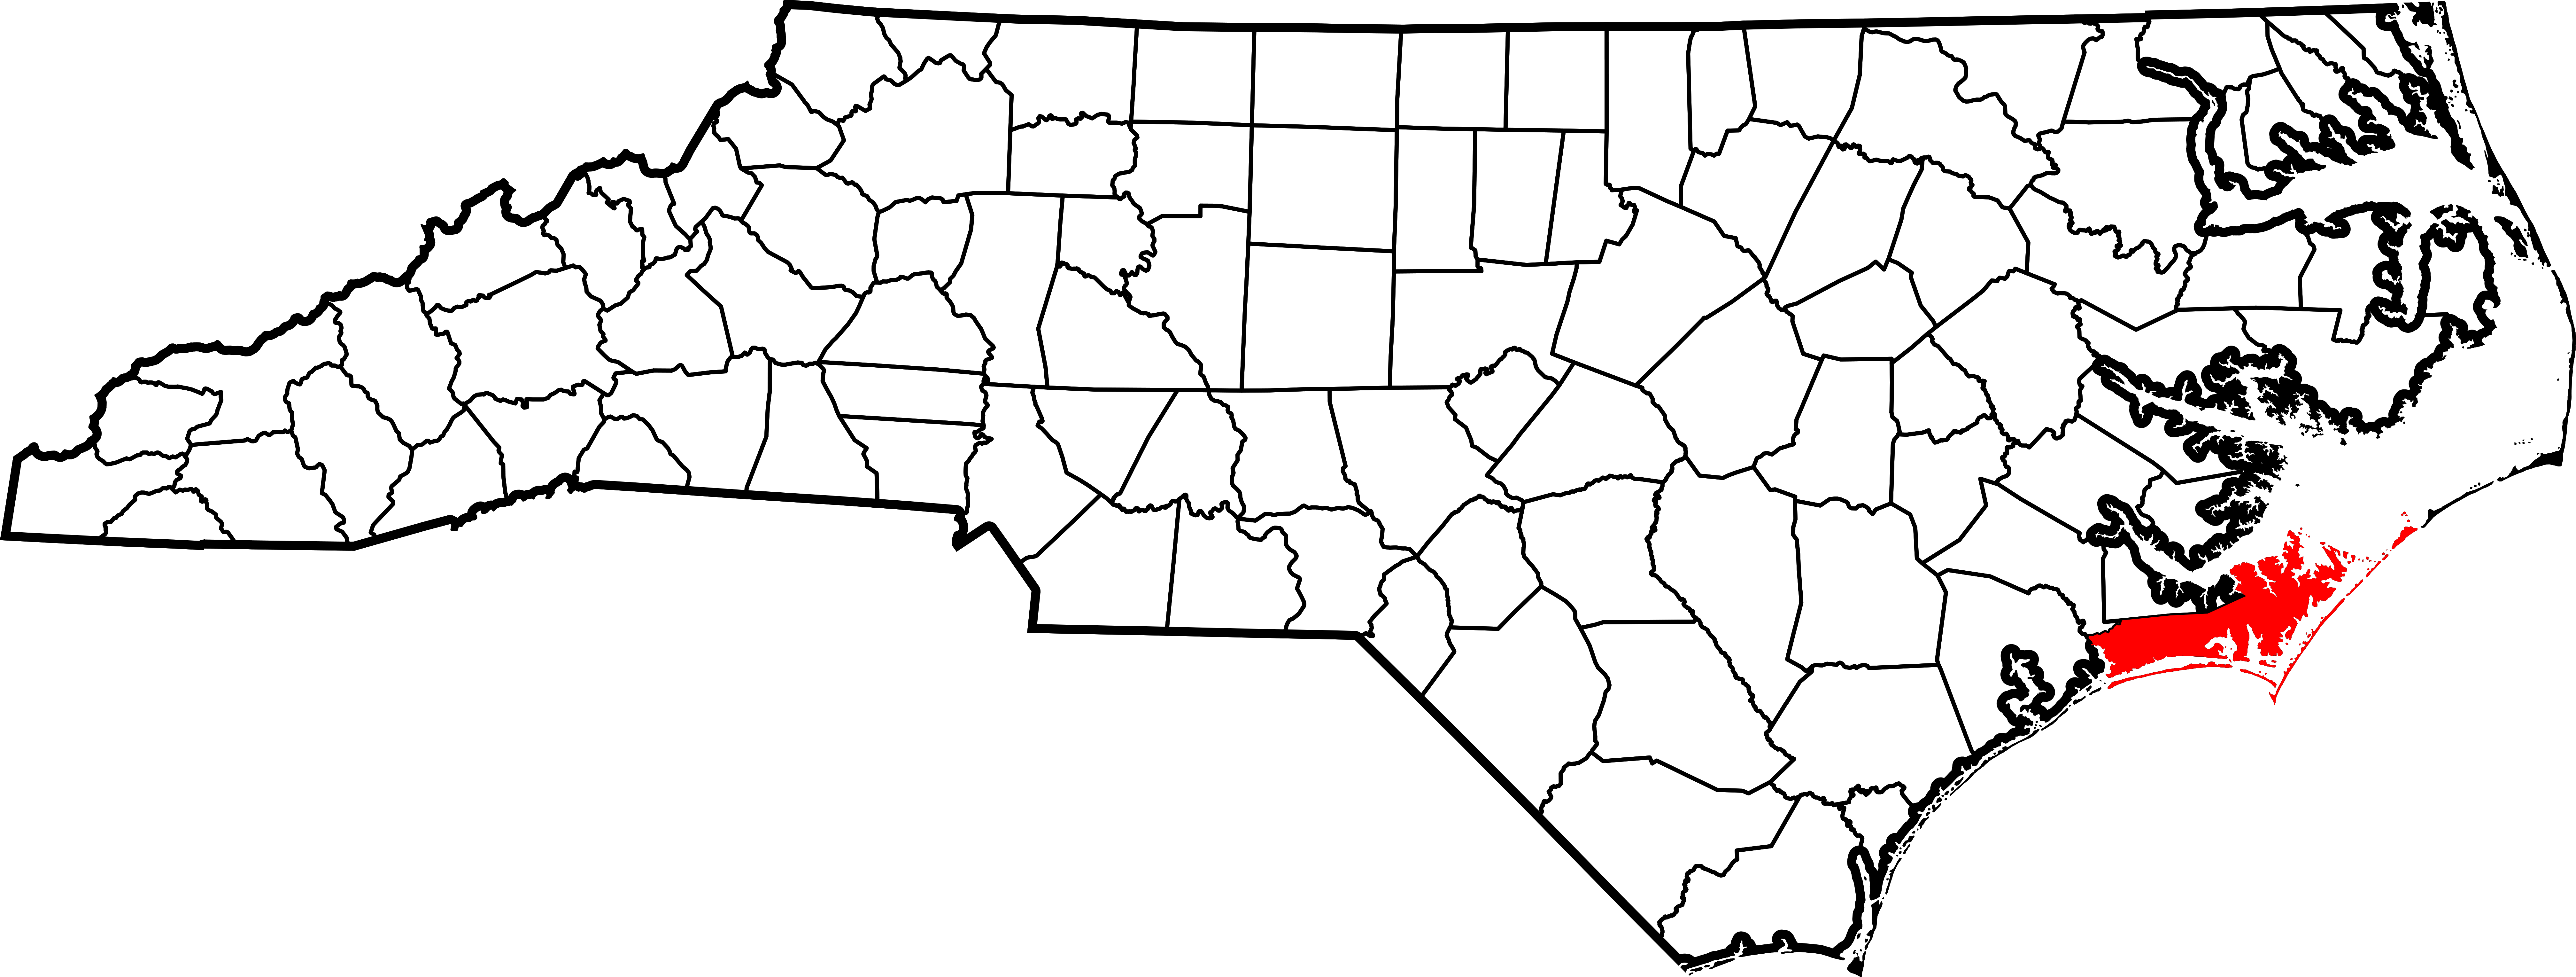 North Carolina County Map NC on united states map to cape town